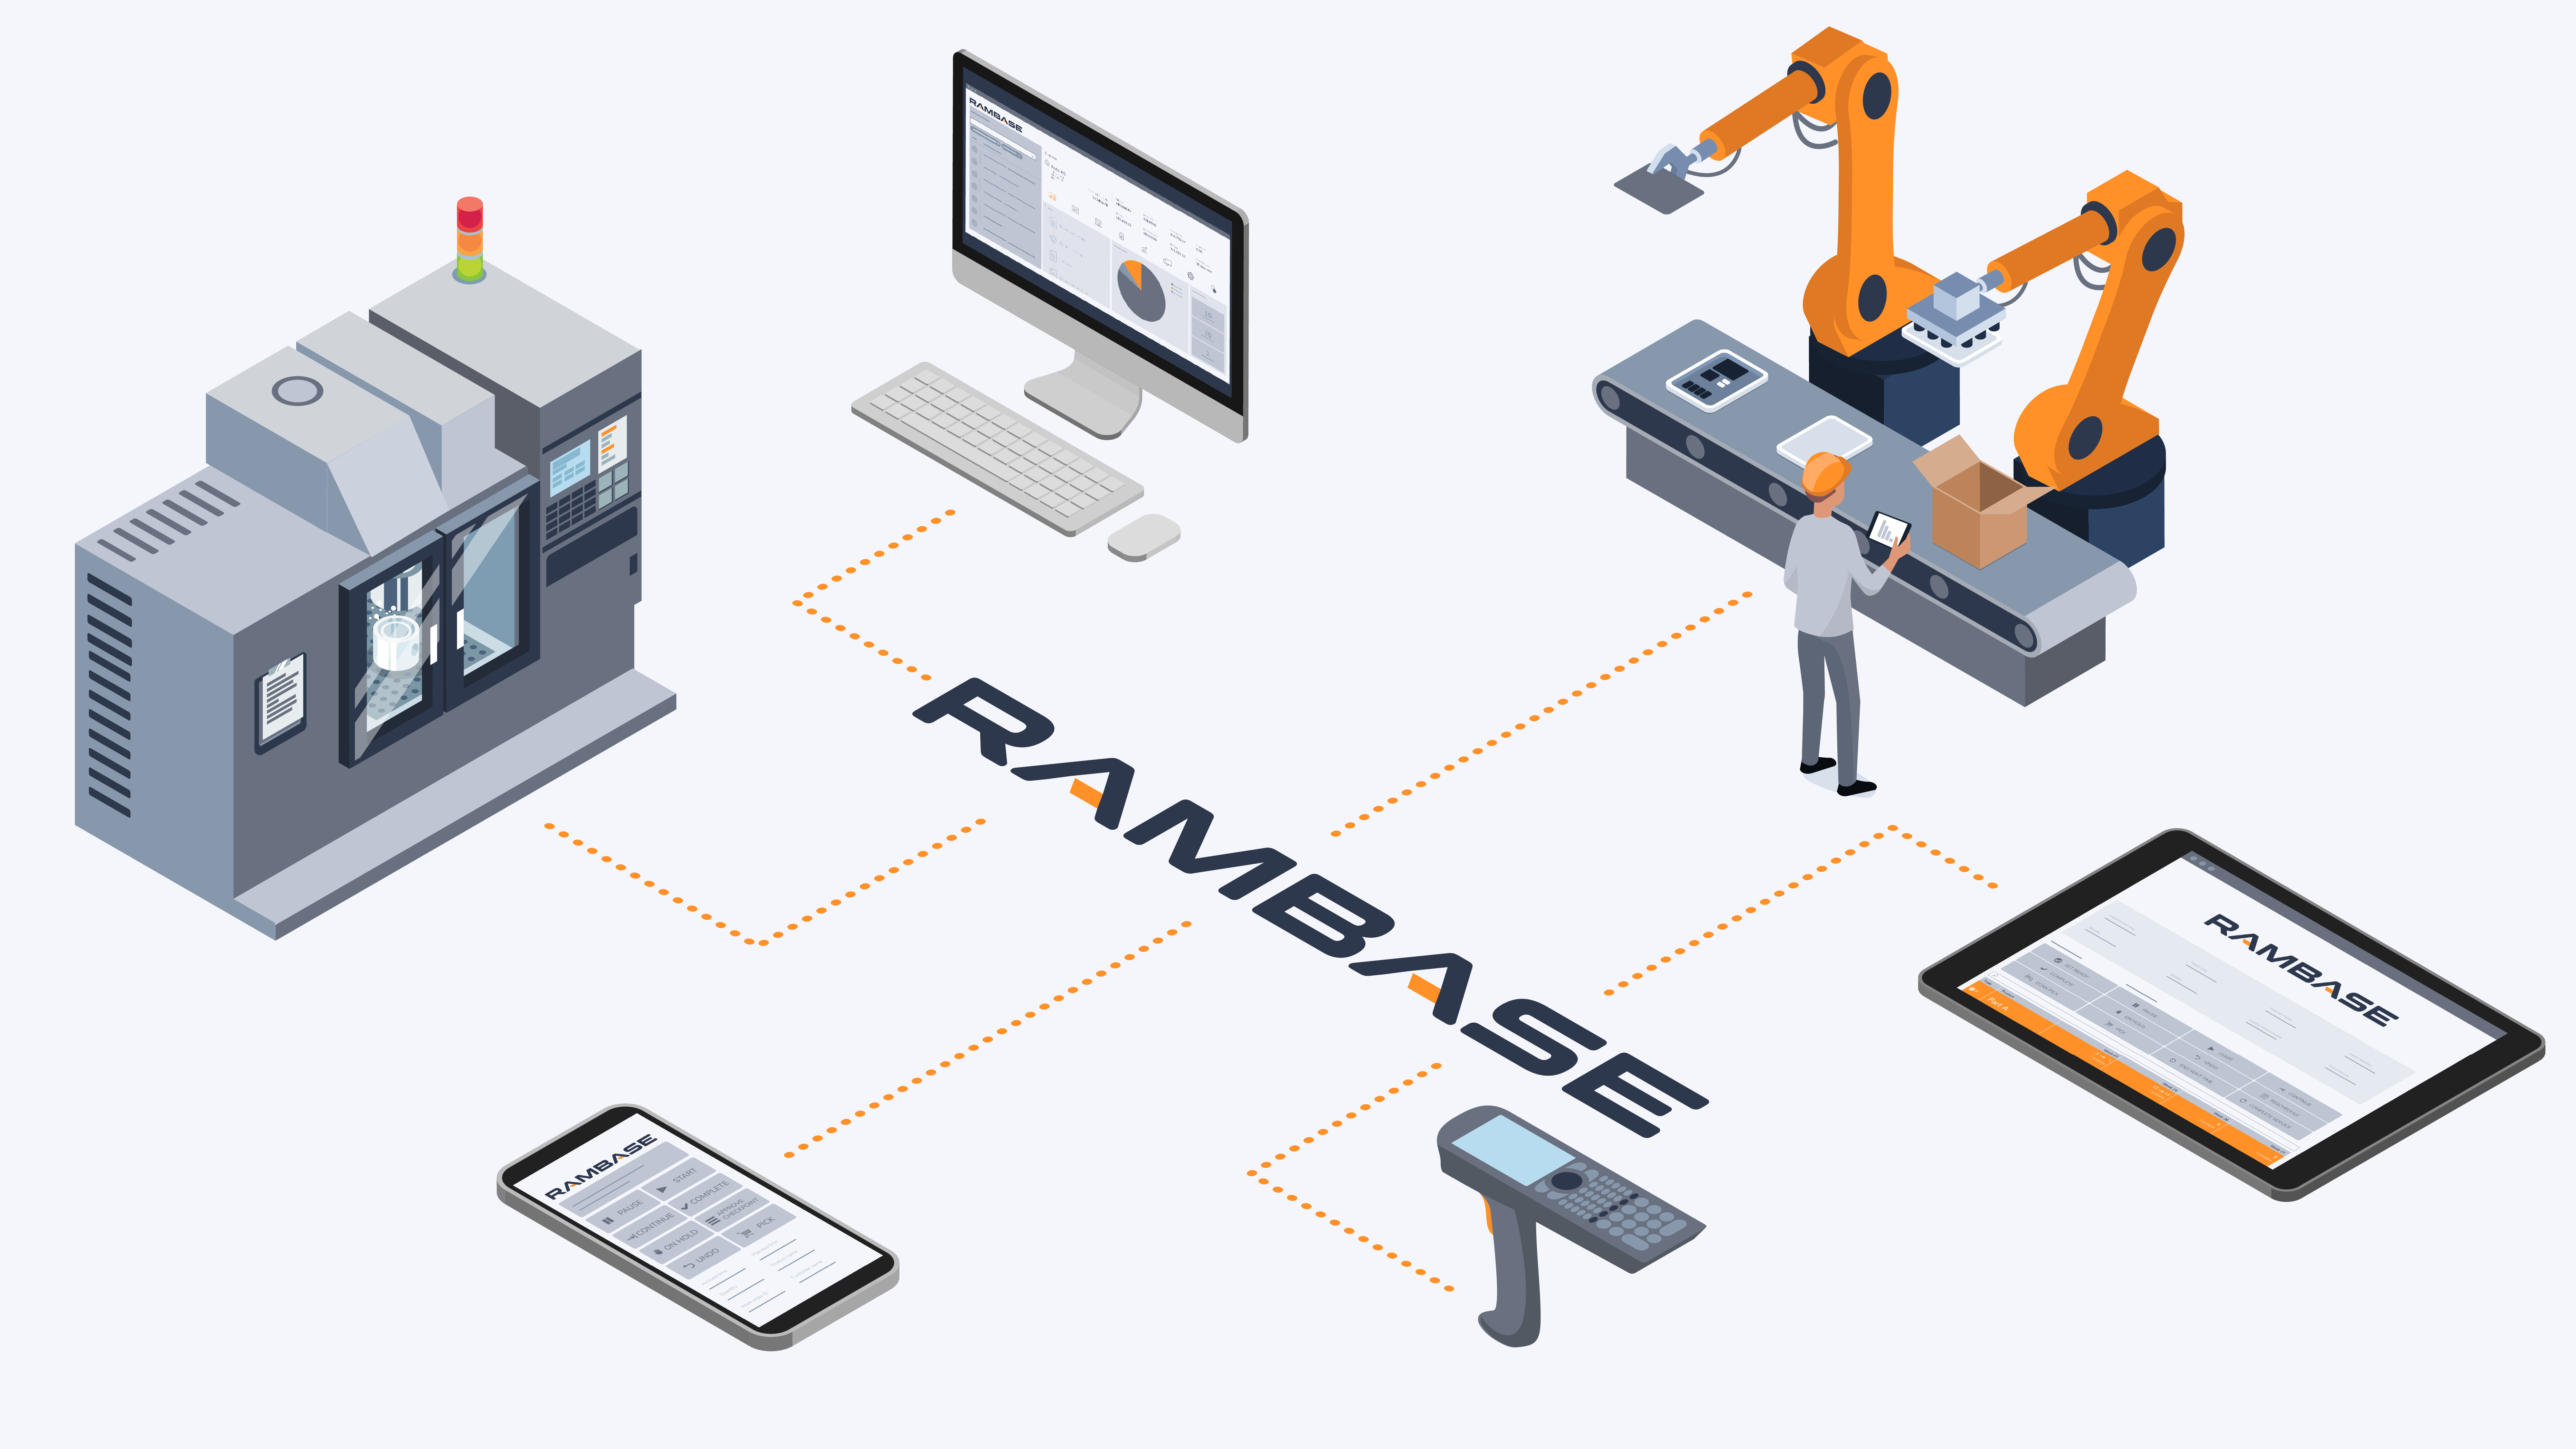 Rambase_devices_white__1920x1080